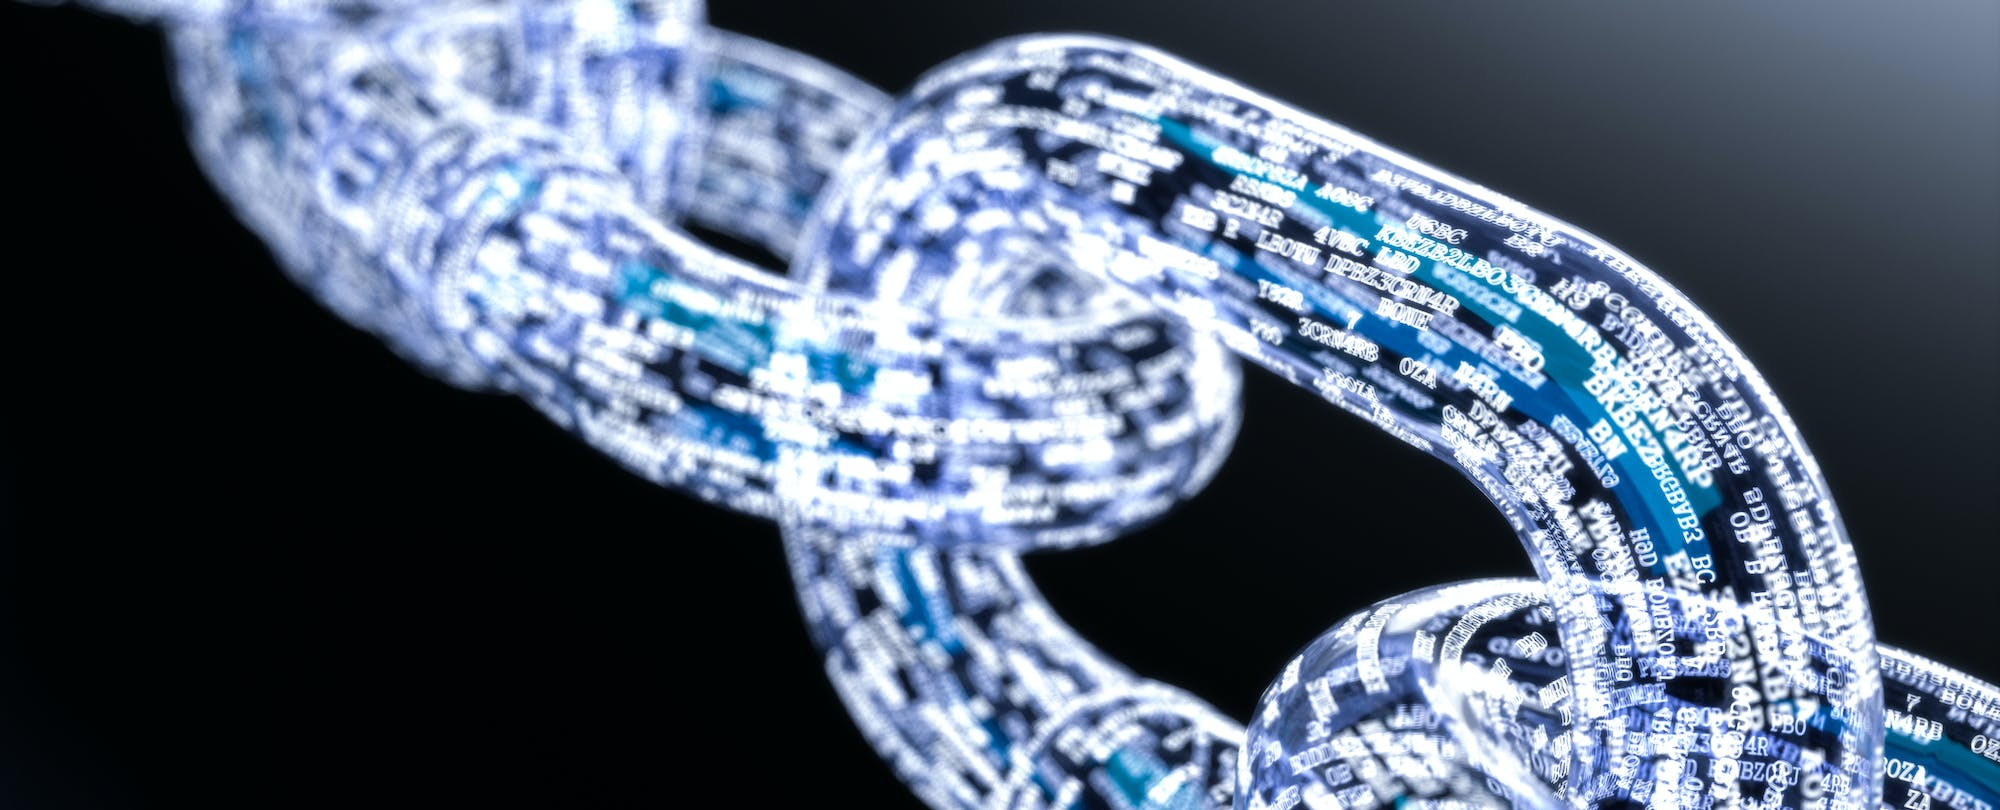 #DLNchat: What is Blockchain and How Can it Support Student Success?